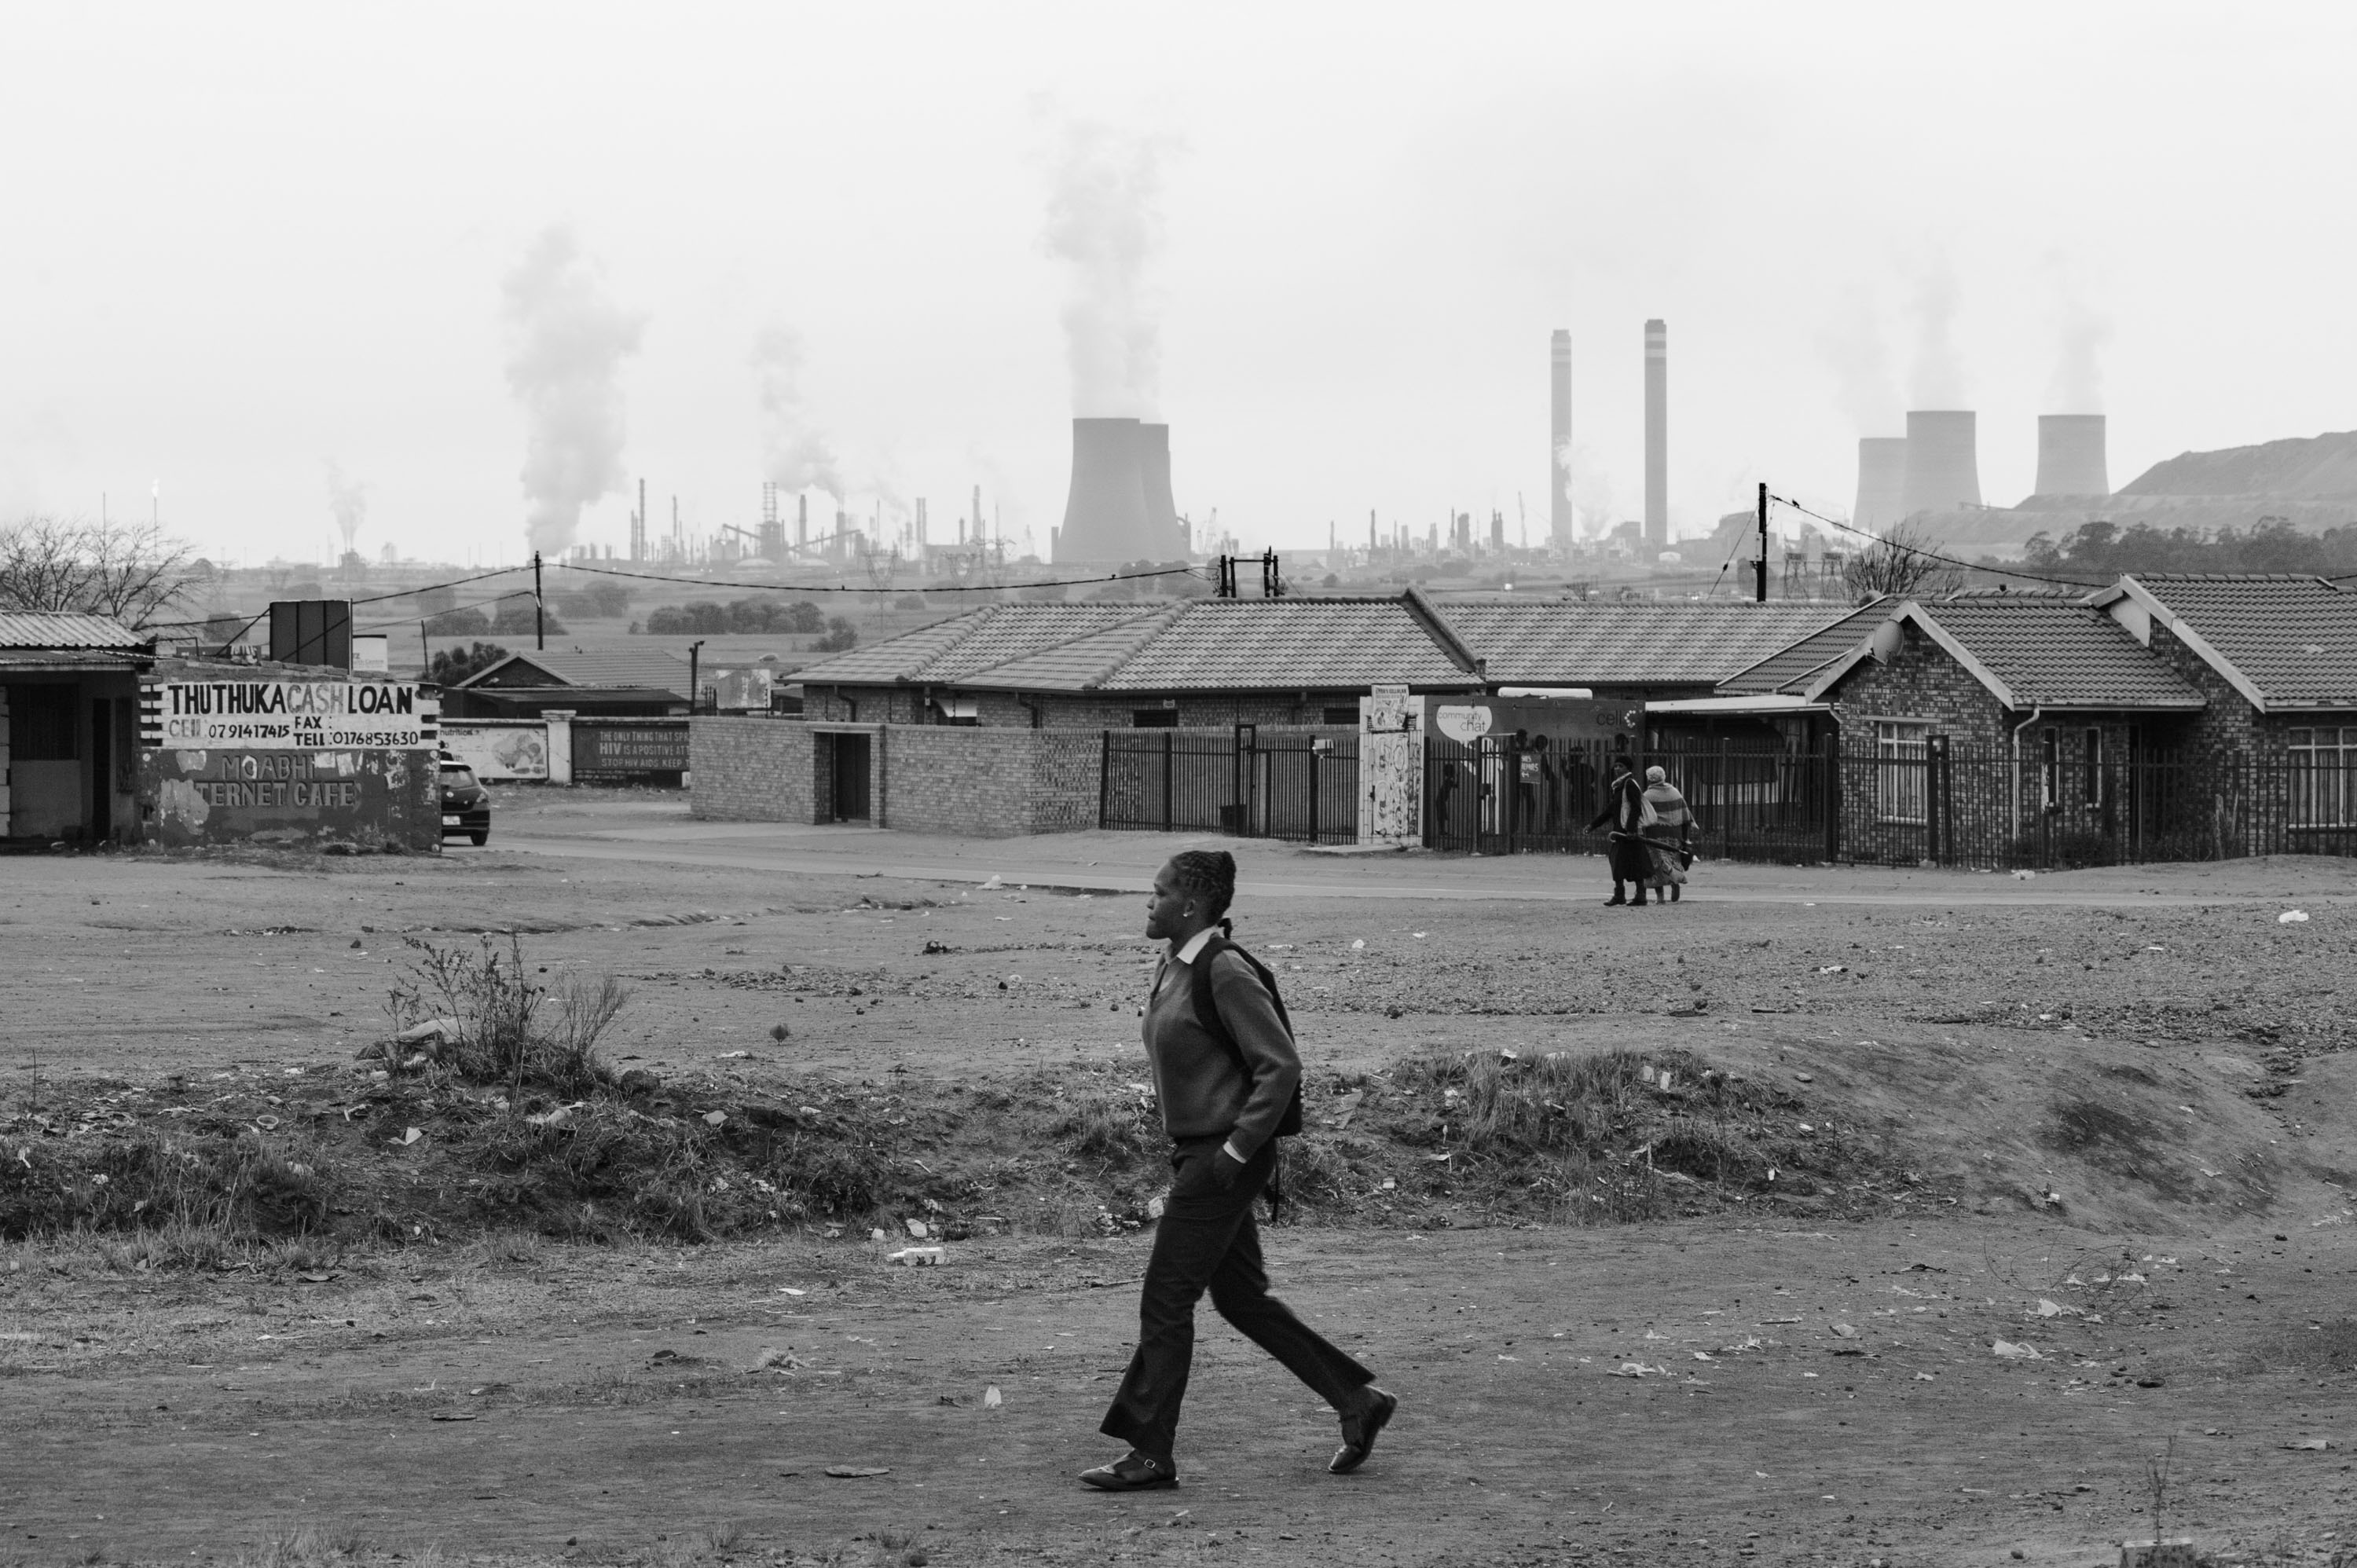 A student walks through eMbalenhle township near Secunda with the Sasol Synfuels Plant in the background. Many people in eMbalenhle suffer from tuberculosis, asthma and other respiratory diseases. eMbalenhle, Mpumalanga.